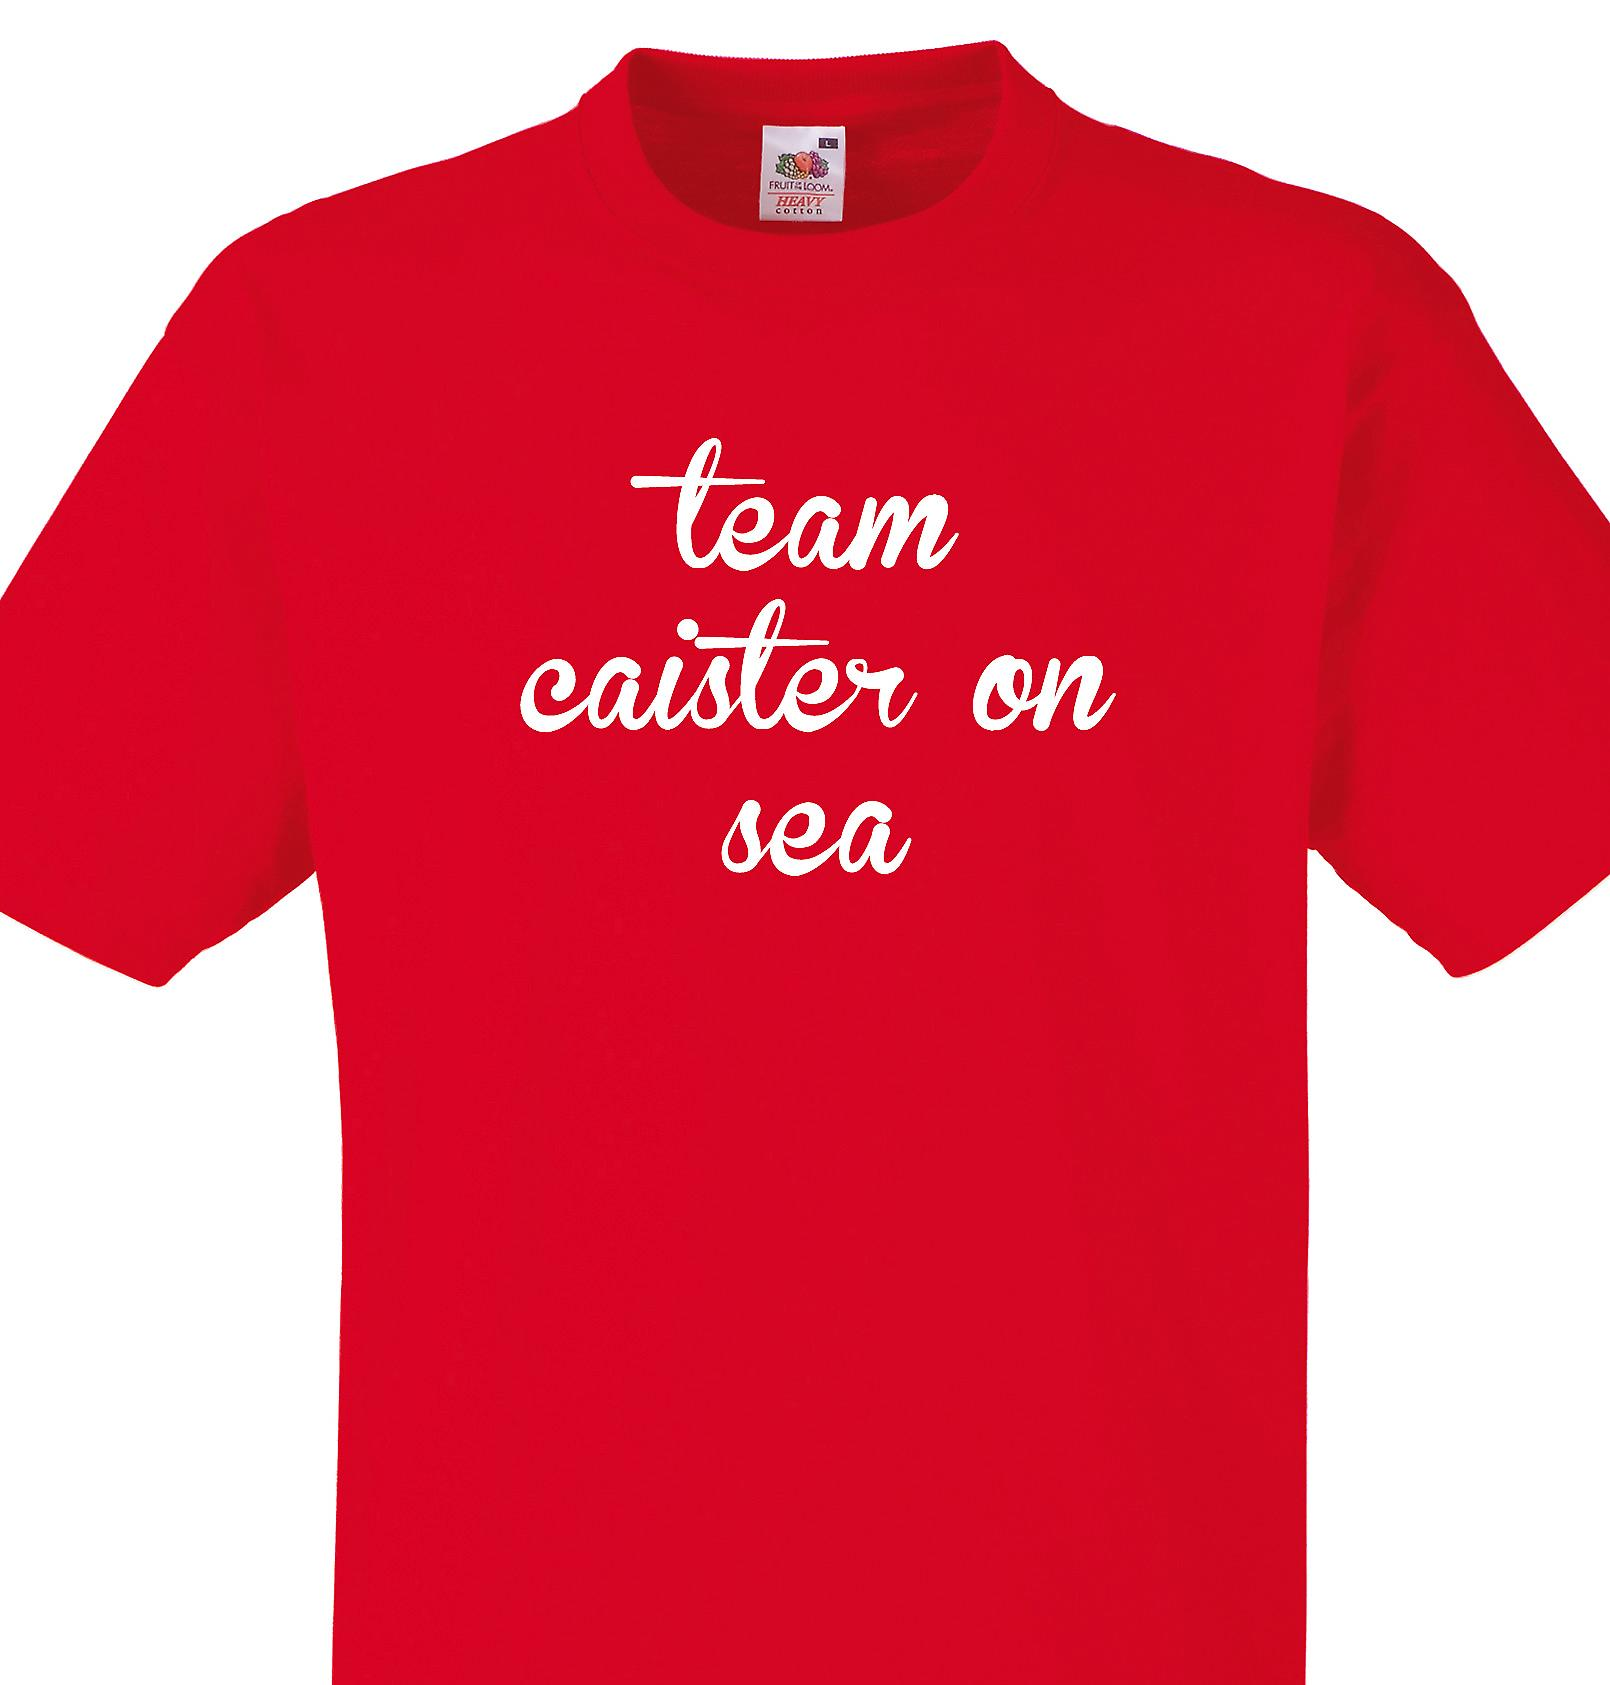 Team Caister on sea Red T shirt